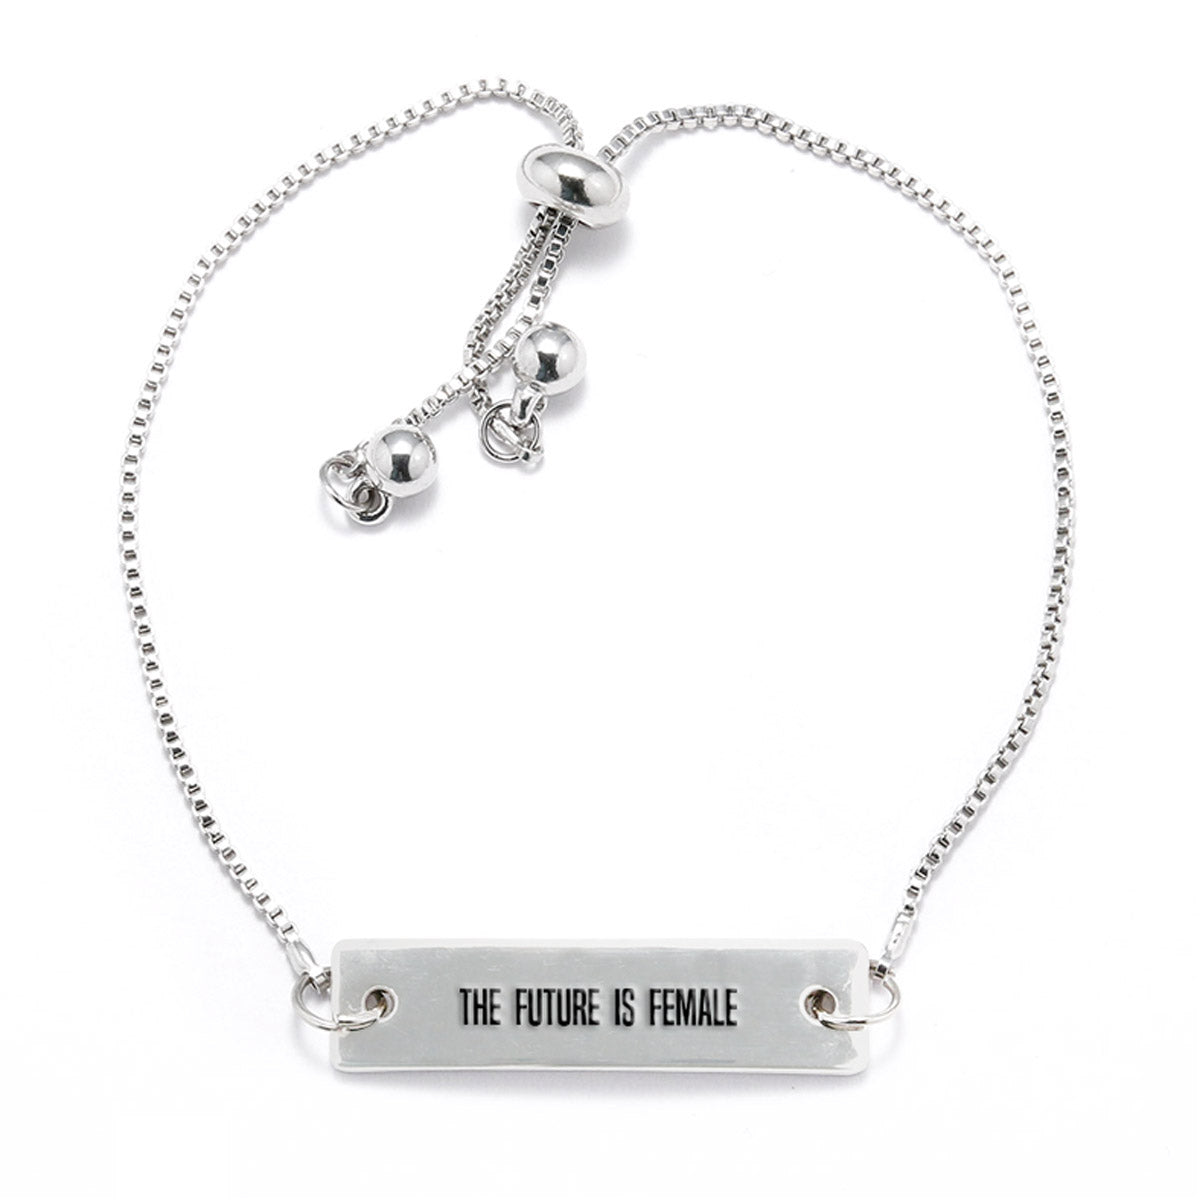 The Future is Female Silver Bar Adjustable Bracelet - pipercleo.com